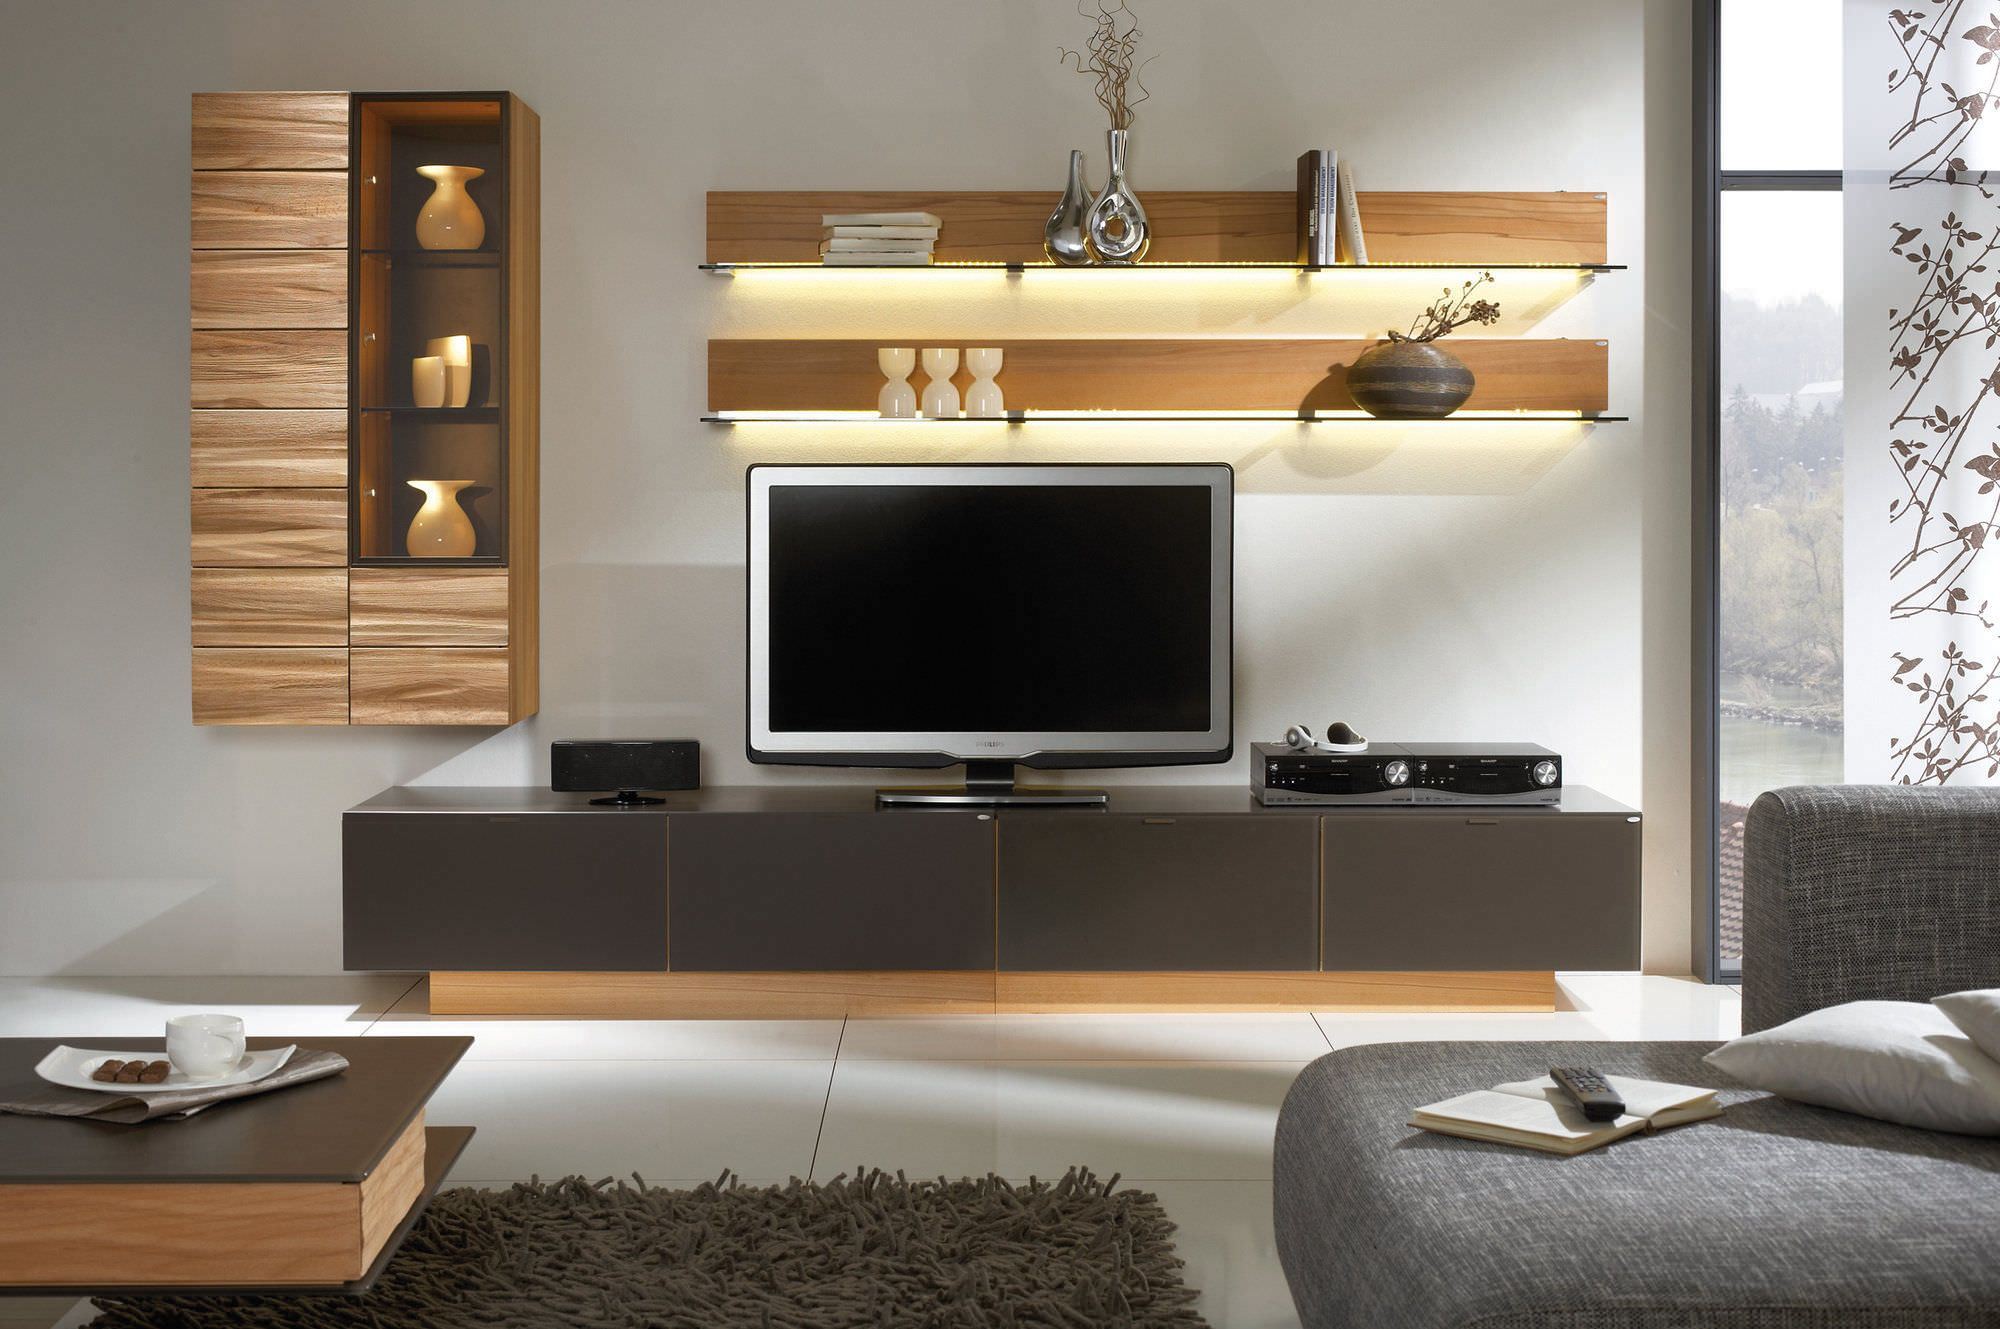 Awesome white brown wood glass cool design contemporary tv for Modern living room shelving units